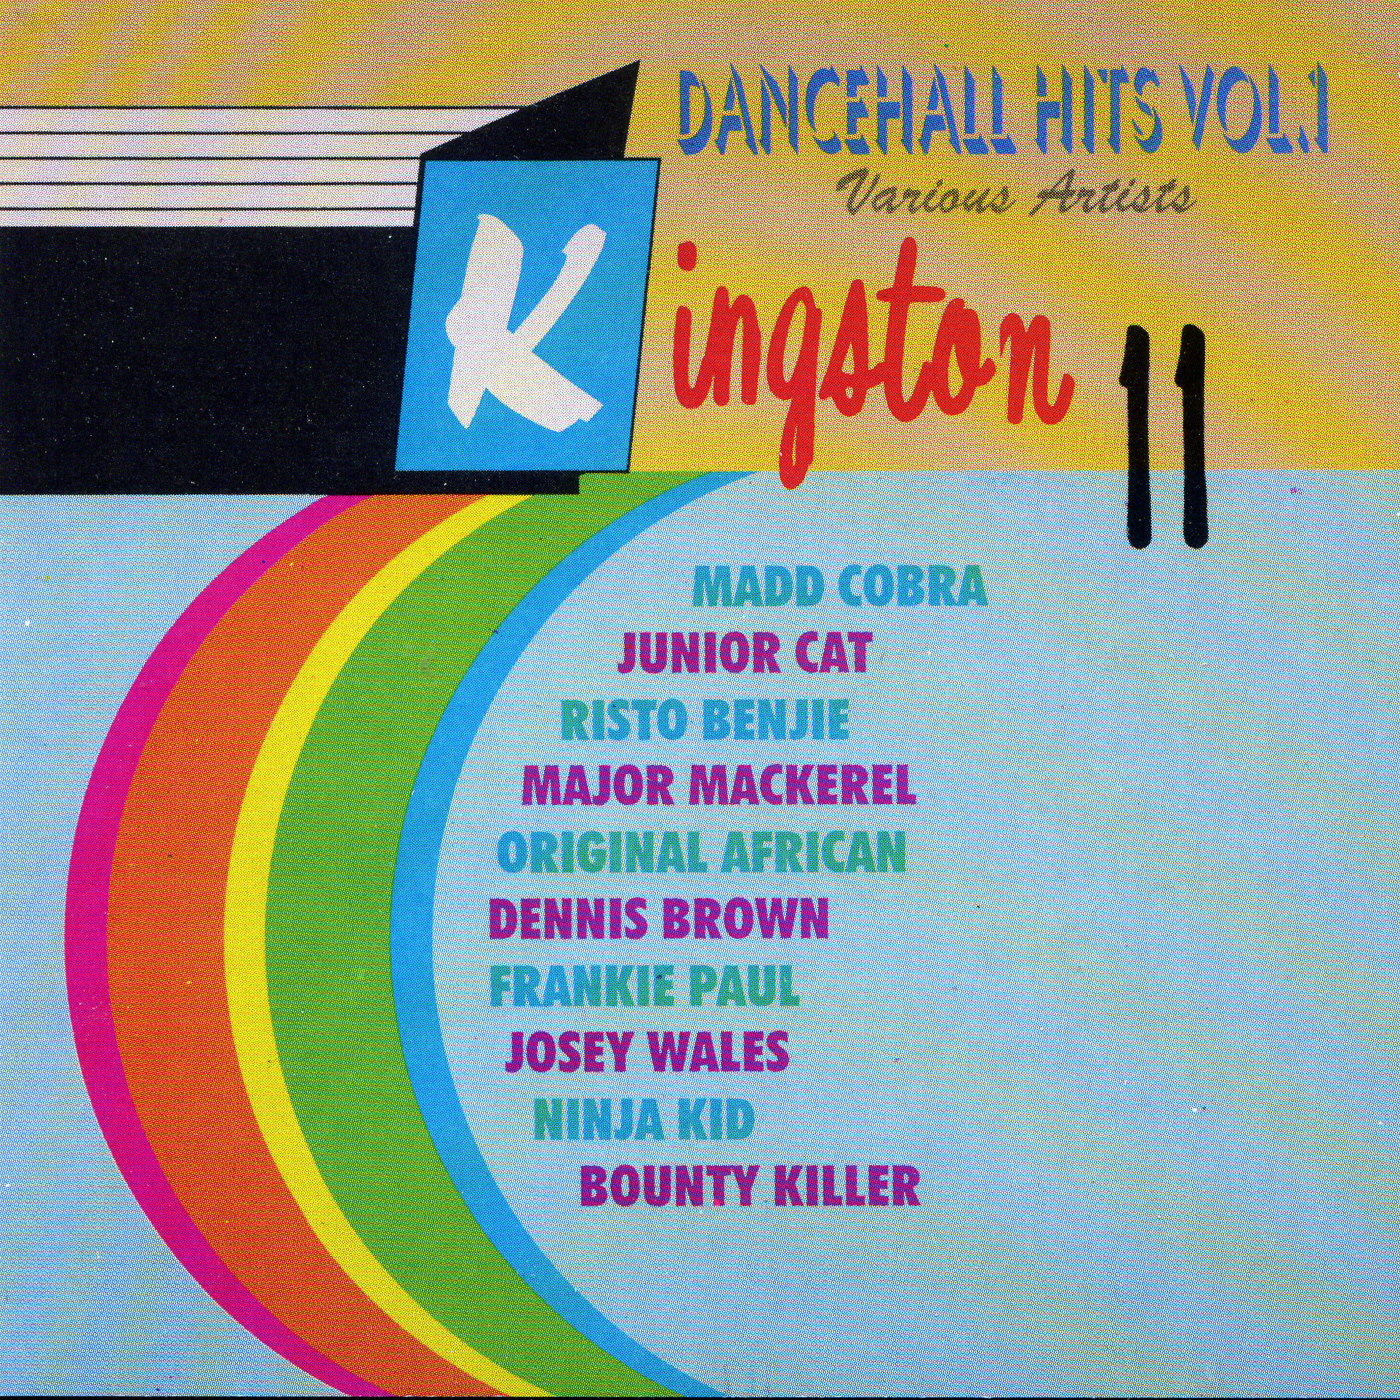 Kingston 11 Dancehall Hits Vol. 1